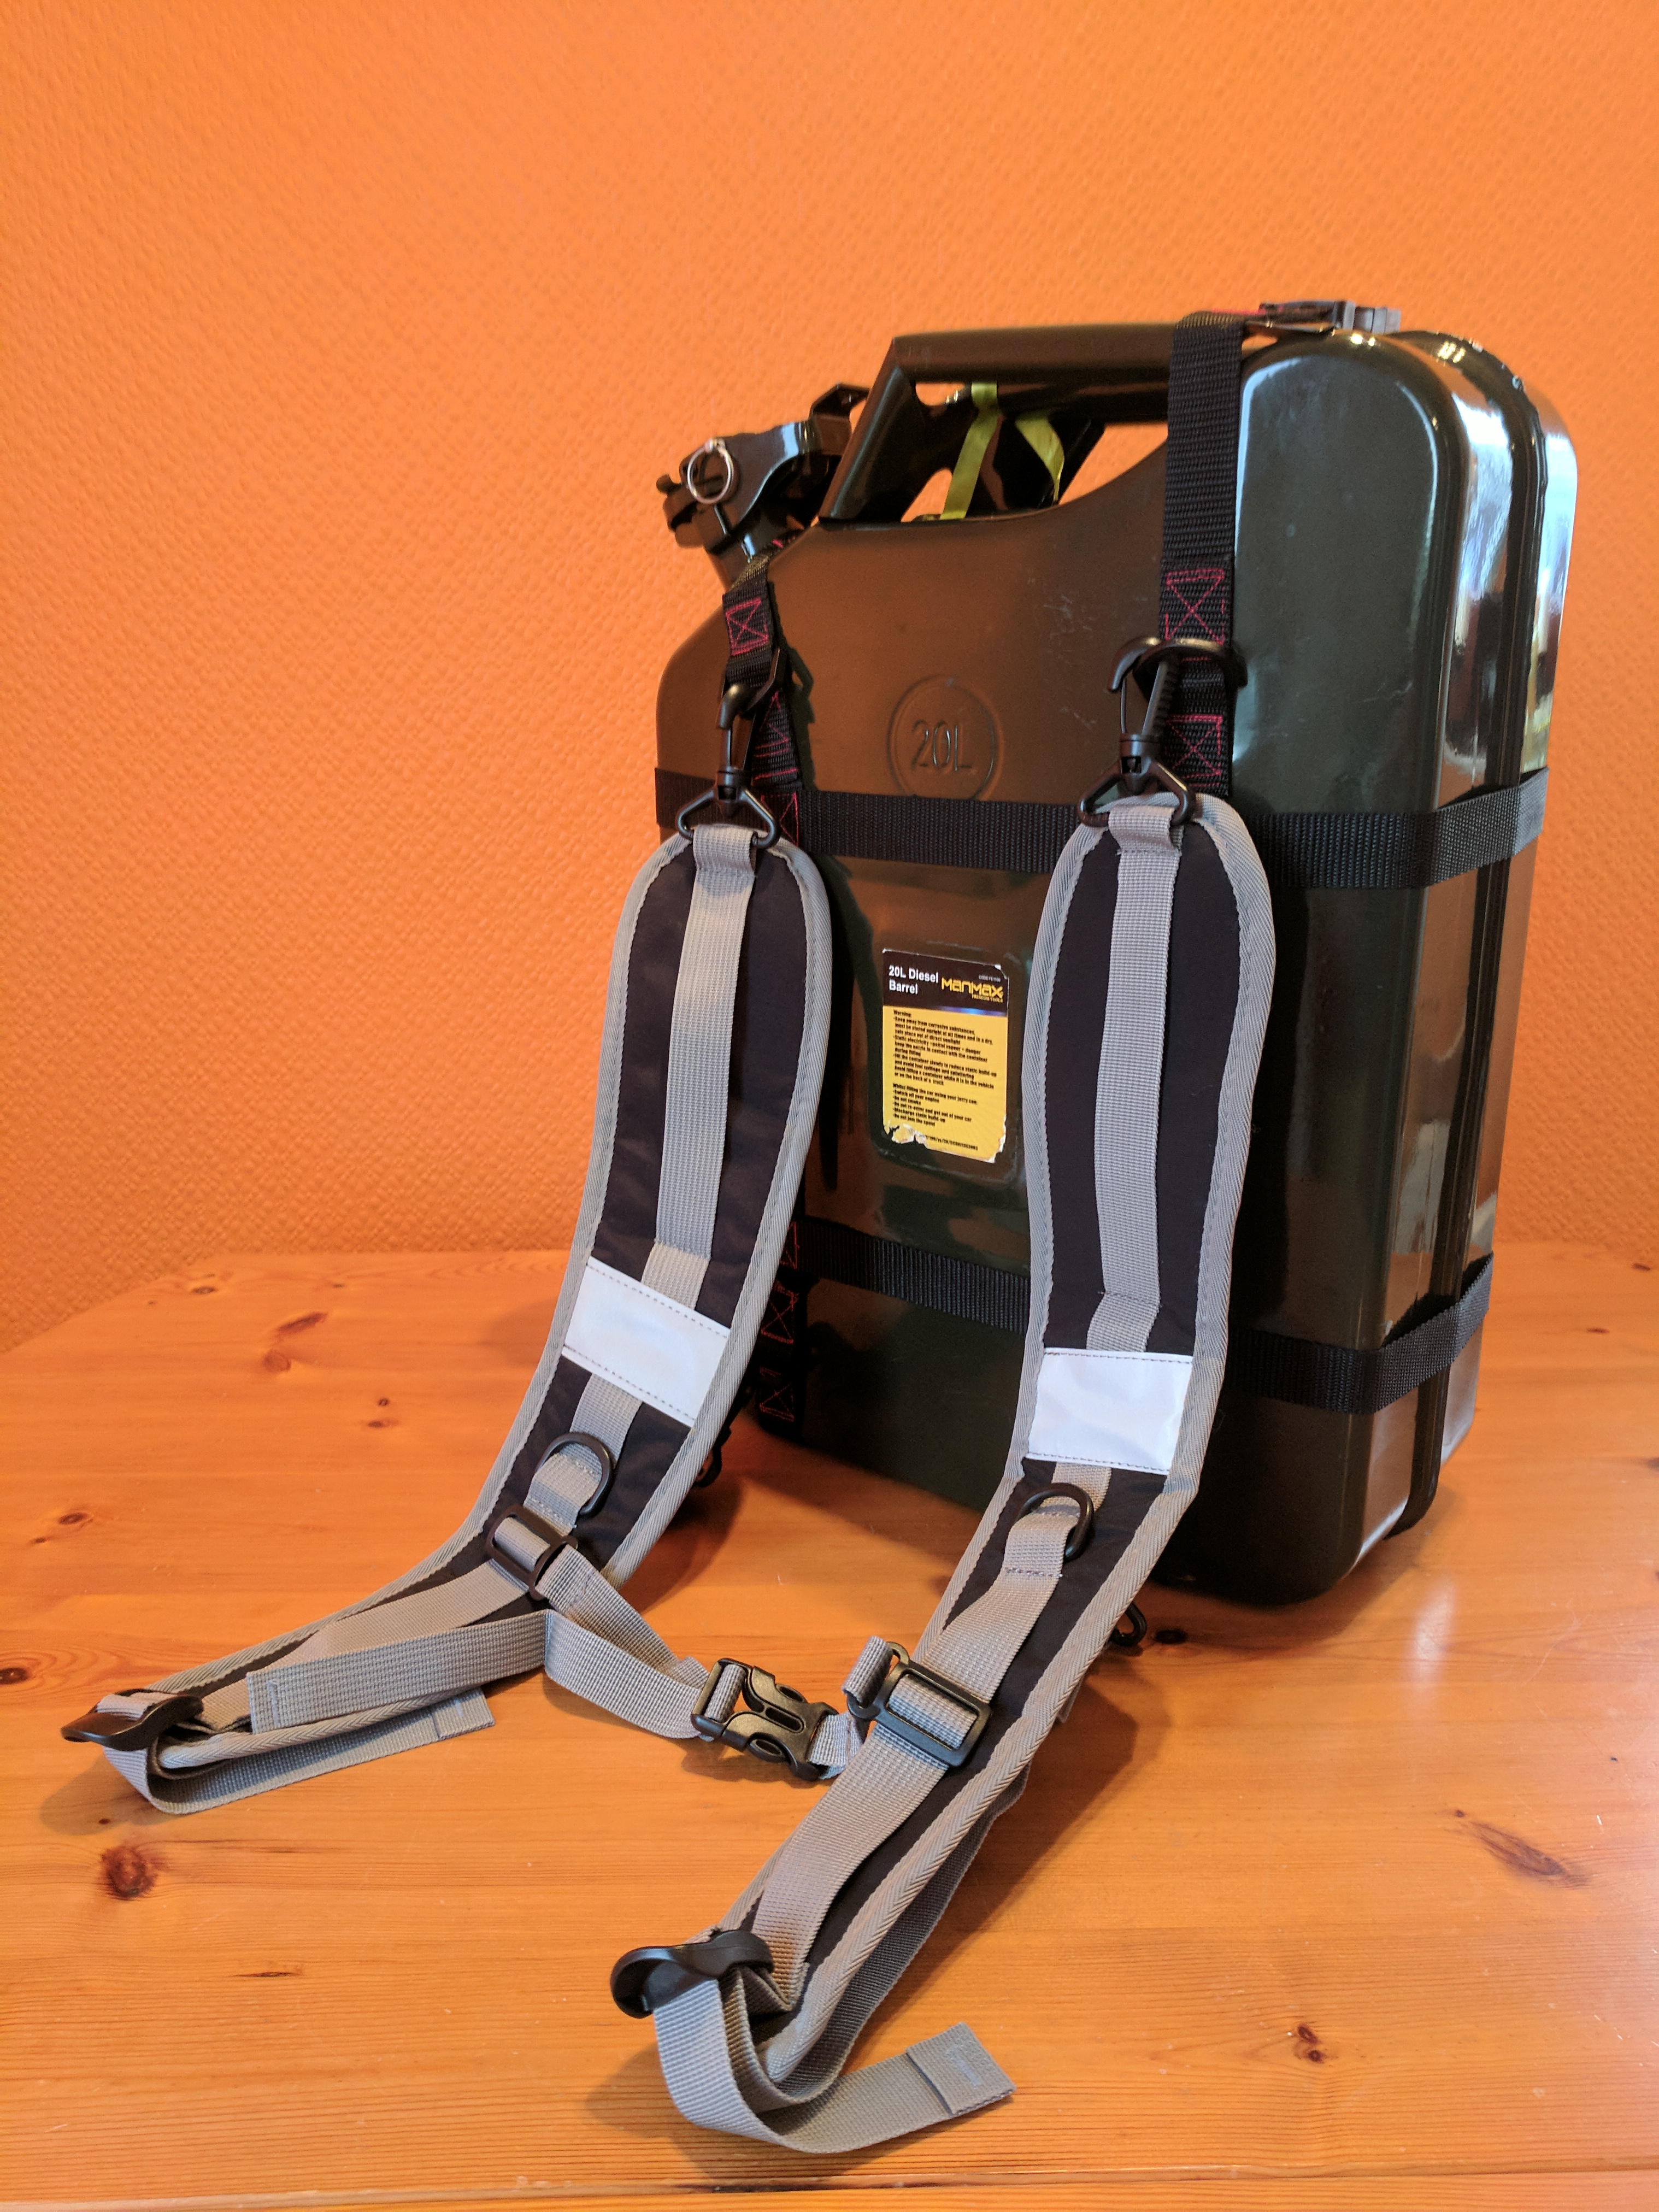 The Jerry Carry Lightweight Jerry Can Carrier Backpack